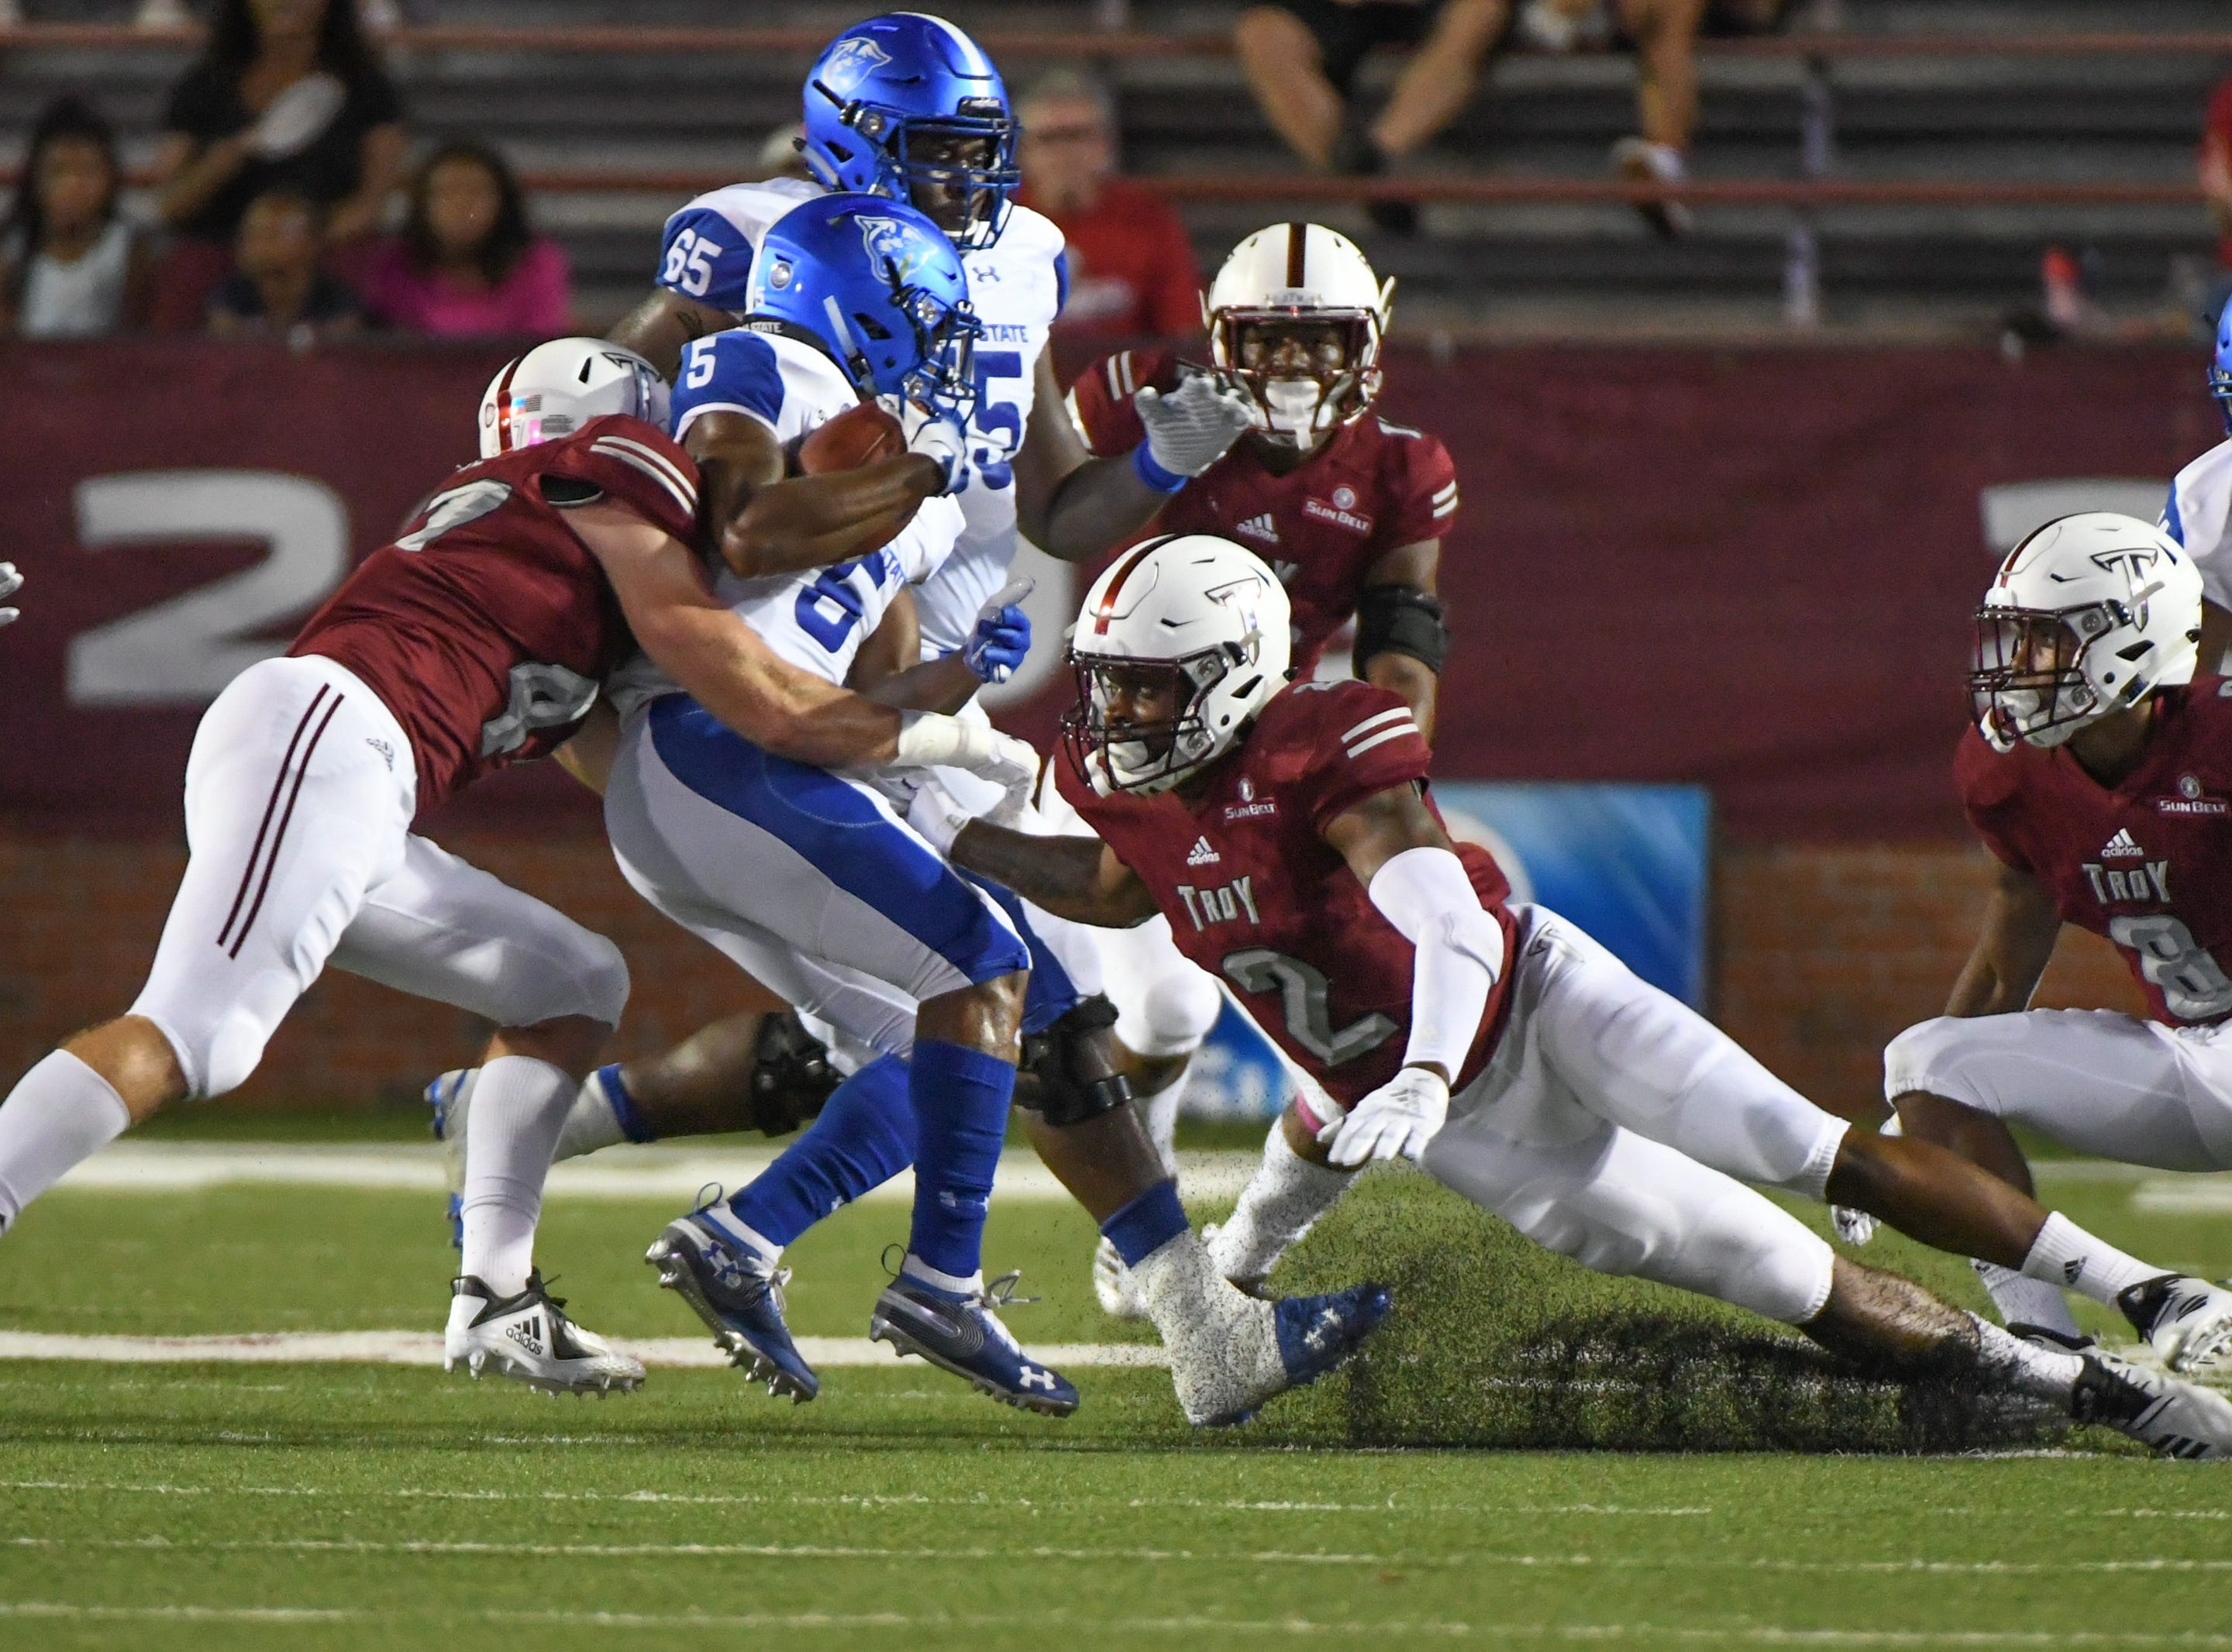 Georgia State Panthers running back Tra Barnett (5) is tackled by Troy Trojans linebacker Hunter Reese (47) during the first half at Veteran's Memorial Stadium in Troy, Ala., on Thursday, Oct. 4, 2018. (Chip Dillard/Special to the Montgomery Advertiser)